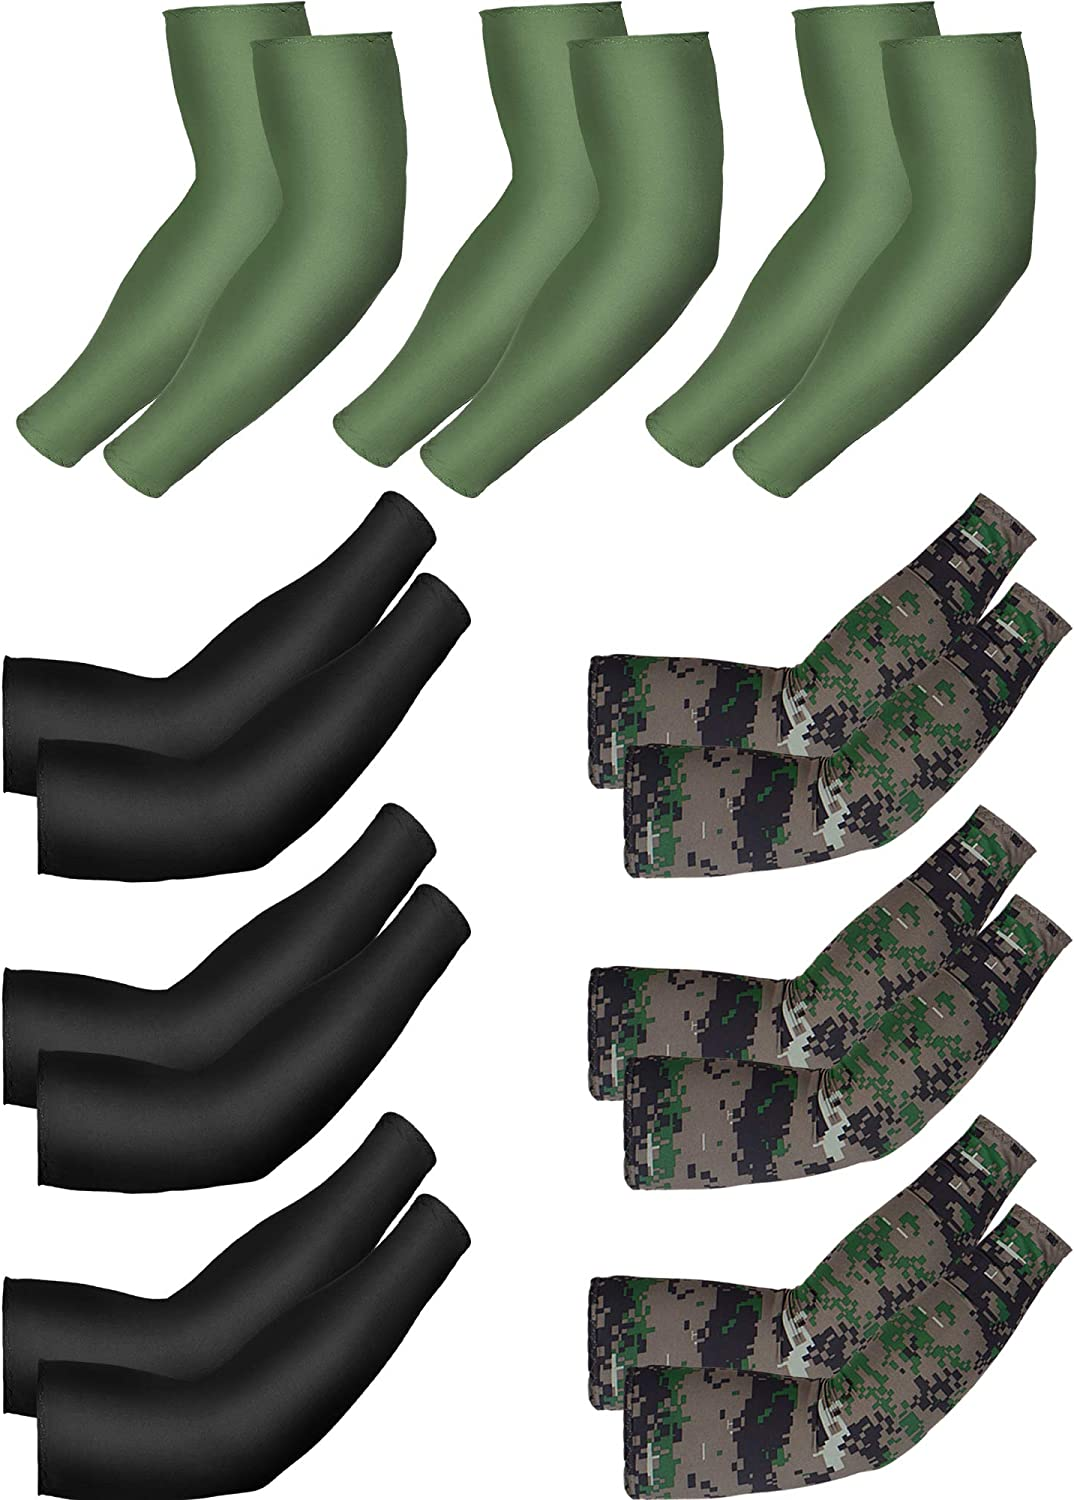 9 Pairs Unisex UV Protection Sleeves Long Arm Sleeves Cooling Sleeves Ice Silk Arm Covers